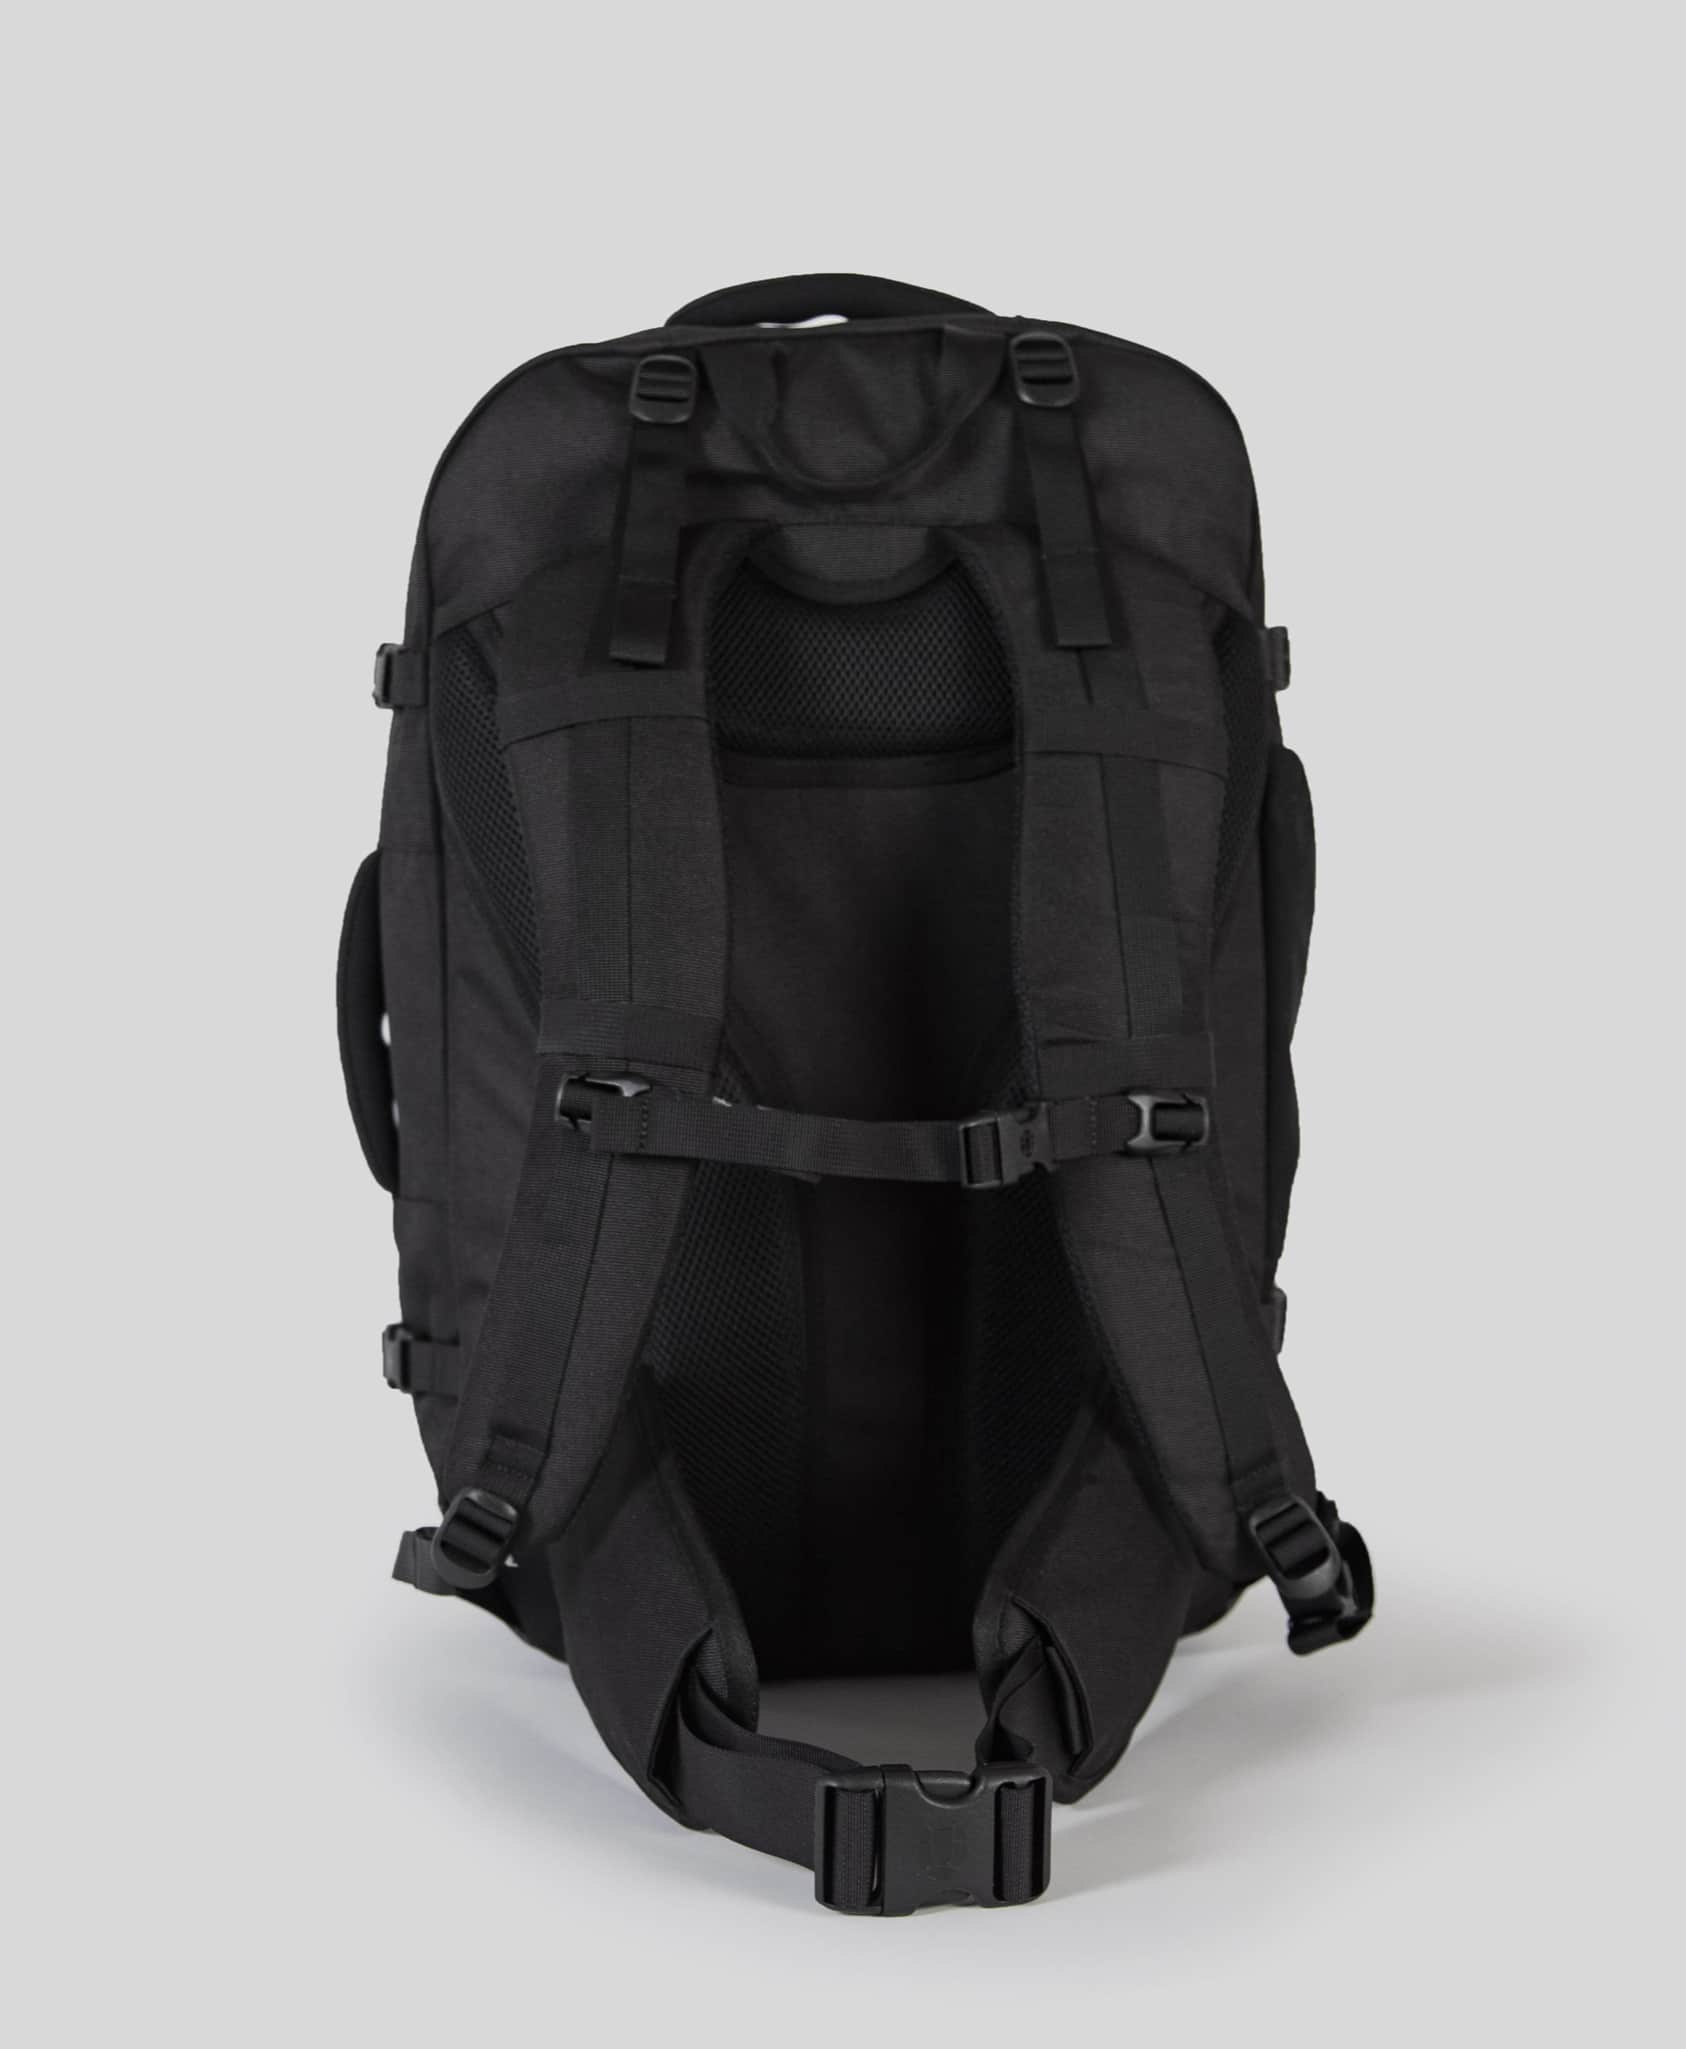 Prelude Backpack